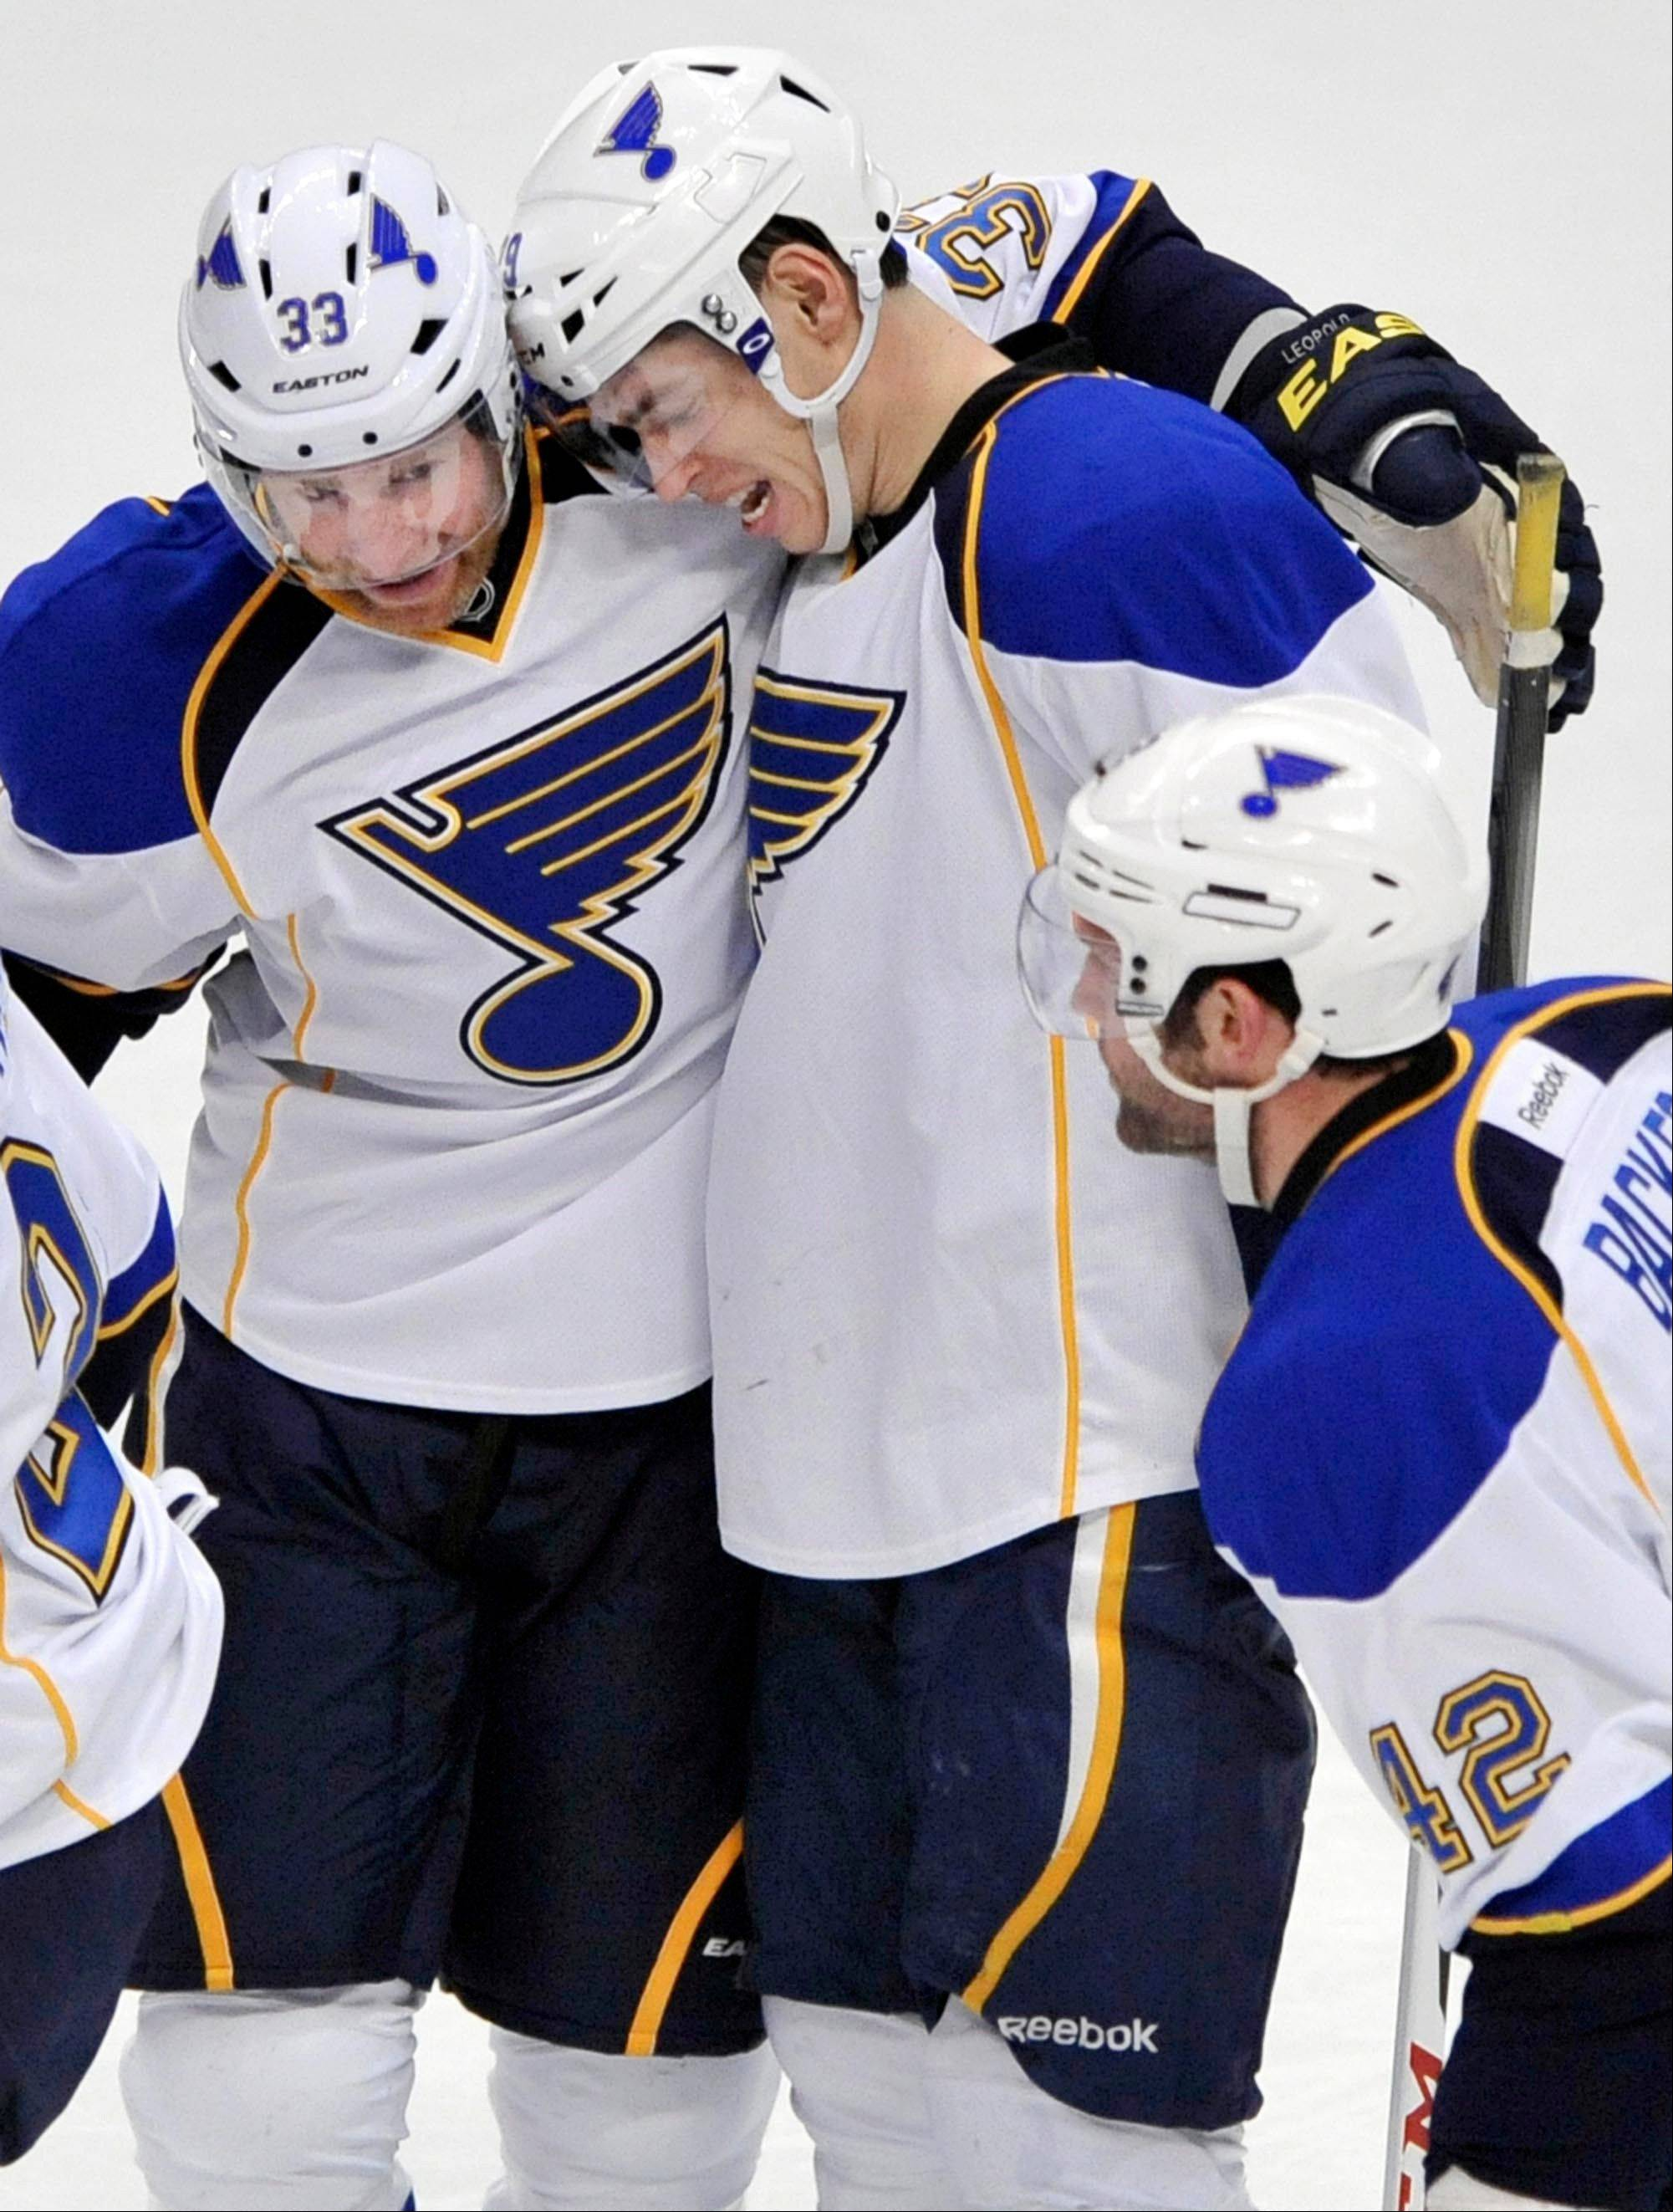 St. Louis Blues' Adam Cracknell, right, celebrates with teammate Jordan Leopold, left, after scoring against the Chicago Blackhawks during the first period of an NHL hockey game in Chicago, Thursday, April, 4, 2013.